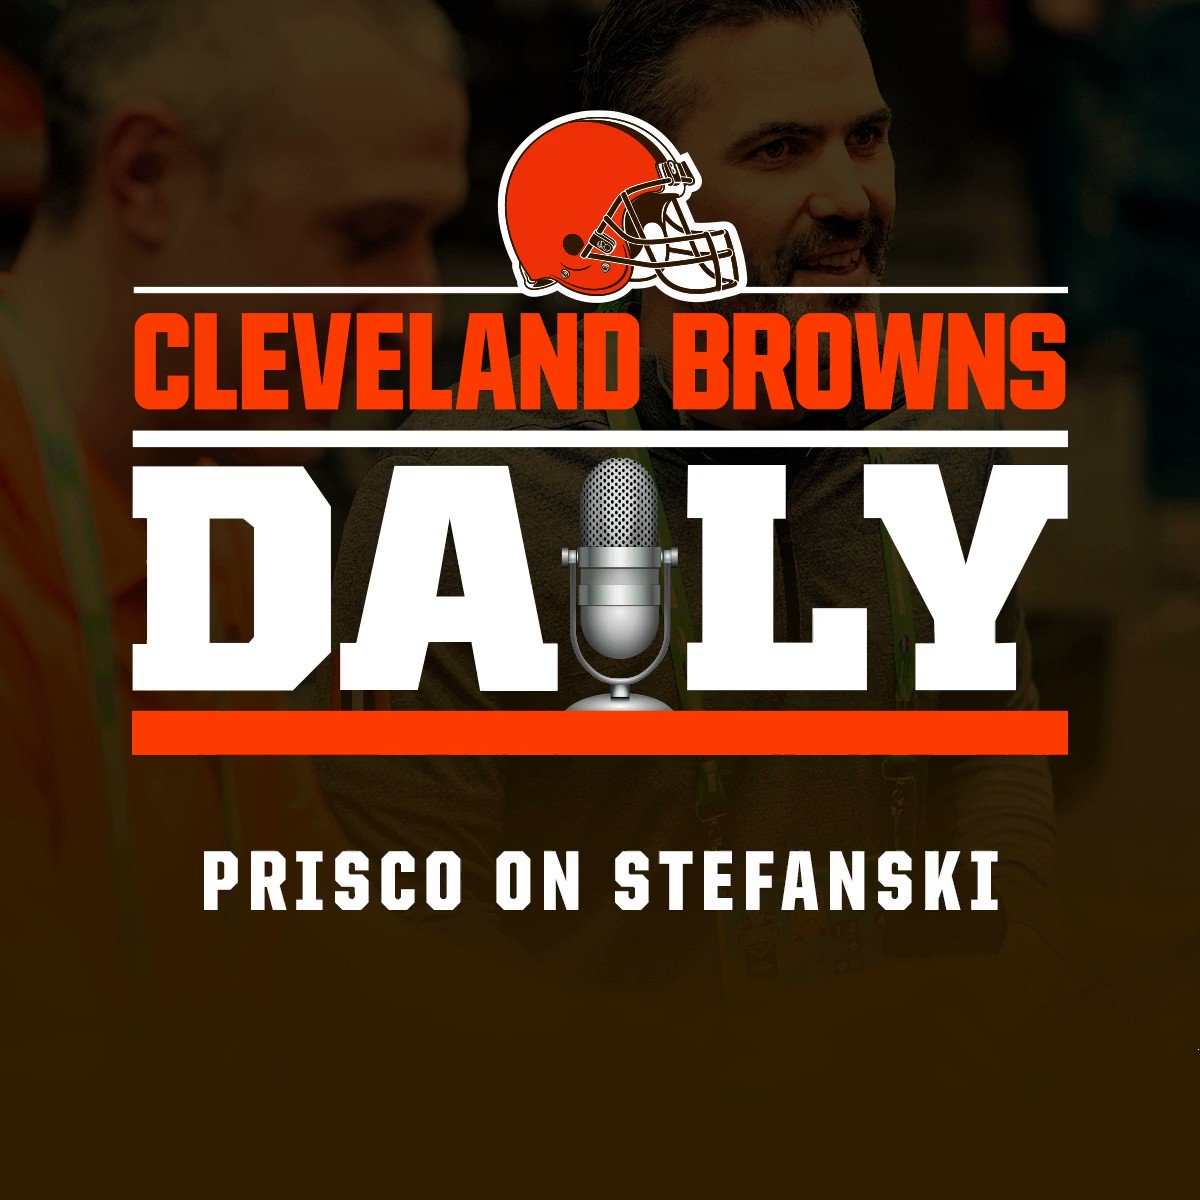 .@PriscoCBS on @Browns_Daily: We got the right guy in Kevin Stefanski 📰 » brow.nz/sr4n